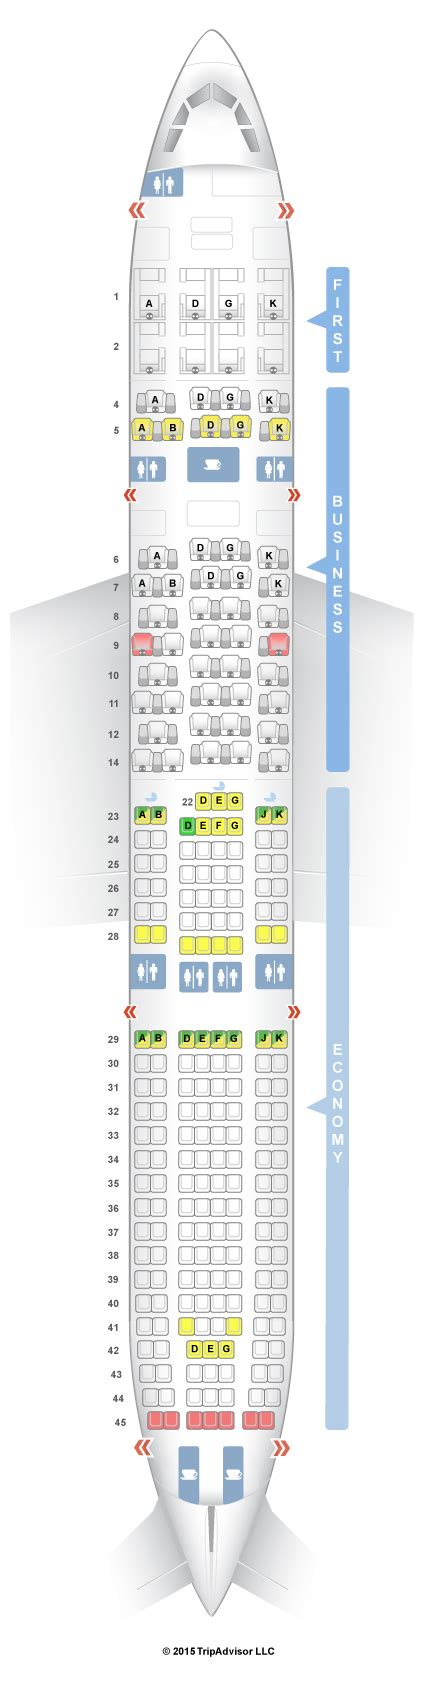 siege swiss seatguru seat map swiss airbus a330 300 333